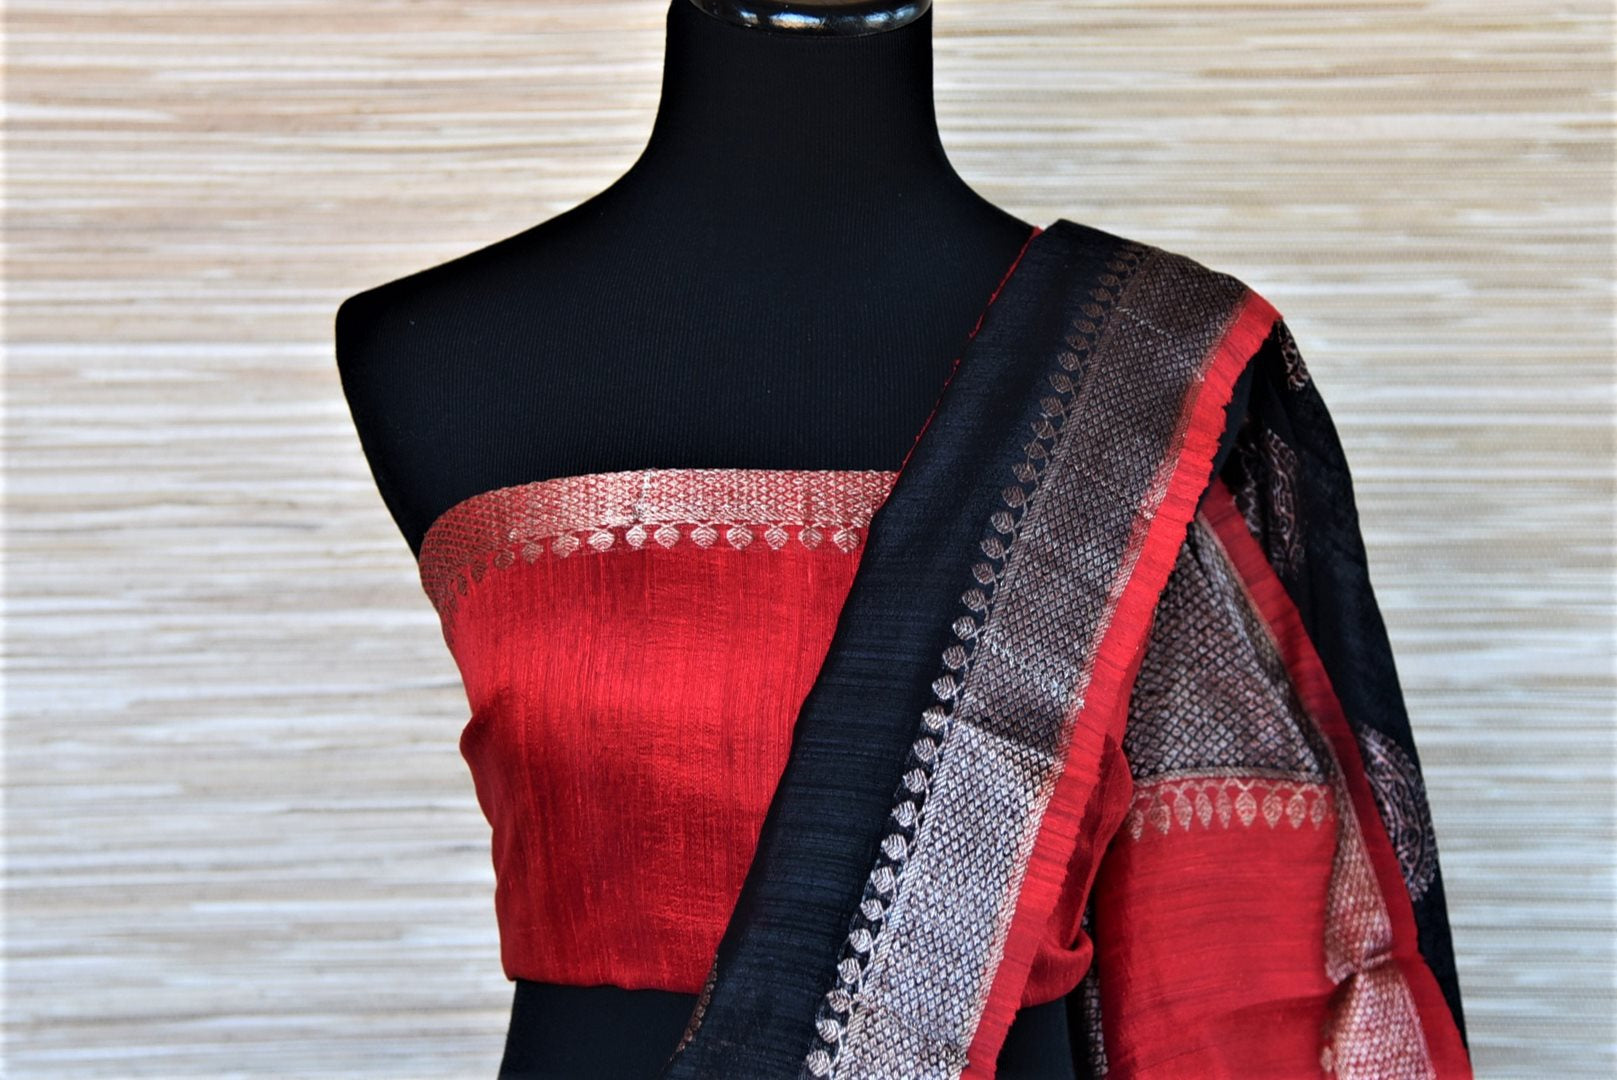 Buy gorgeous black tassar Banarsi saree online in USA with silver zari border and zari buta. Wear designer sarees, Banarasi sarees, handwoven tussar sarees on special occasions from Pure Elegance Indian clothing store in USA. -blouse pallu